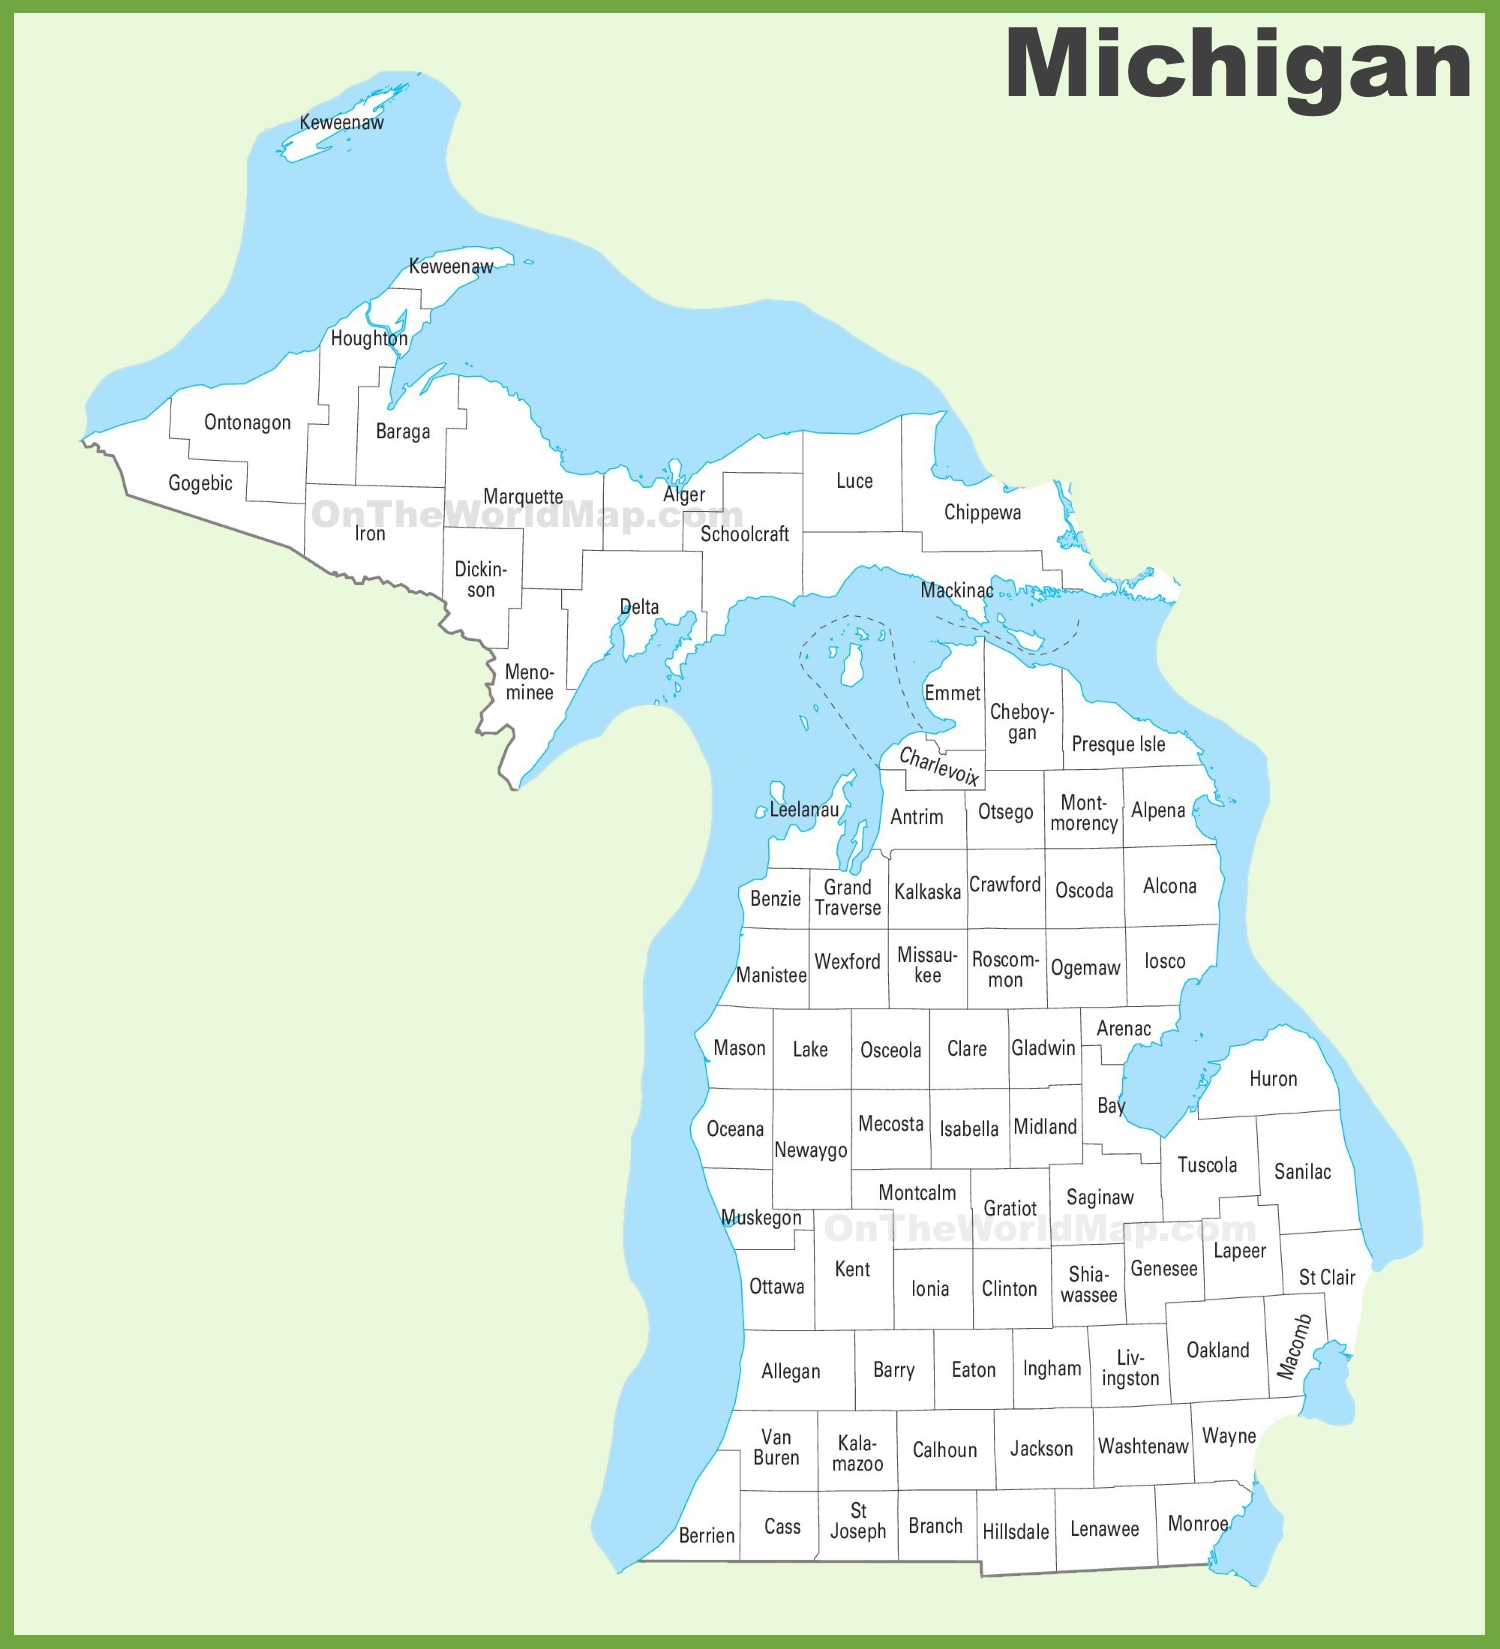 Michigan State Maps | USA | Maps of Michigan (MI)